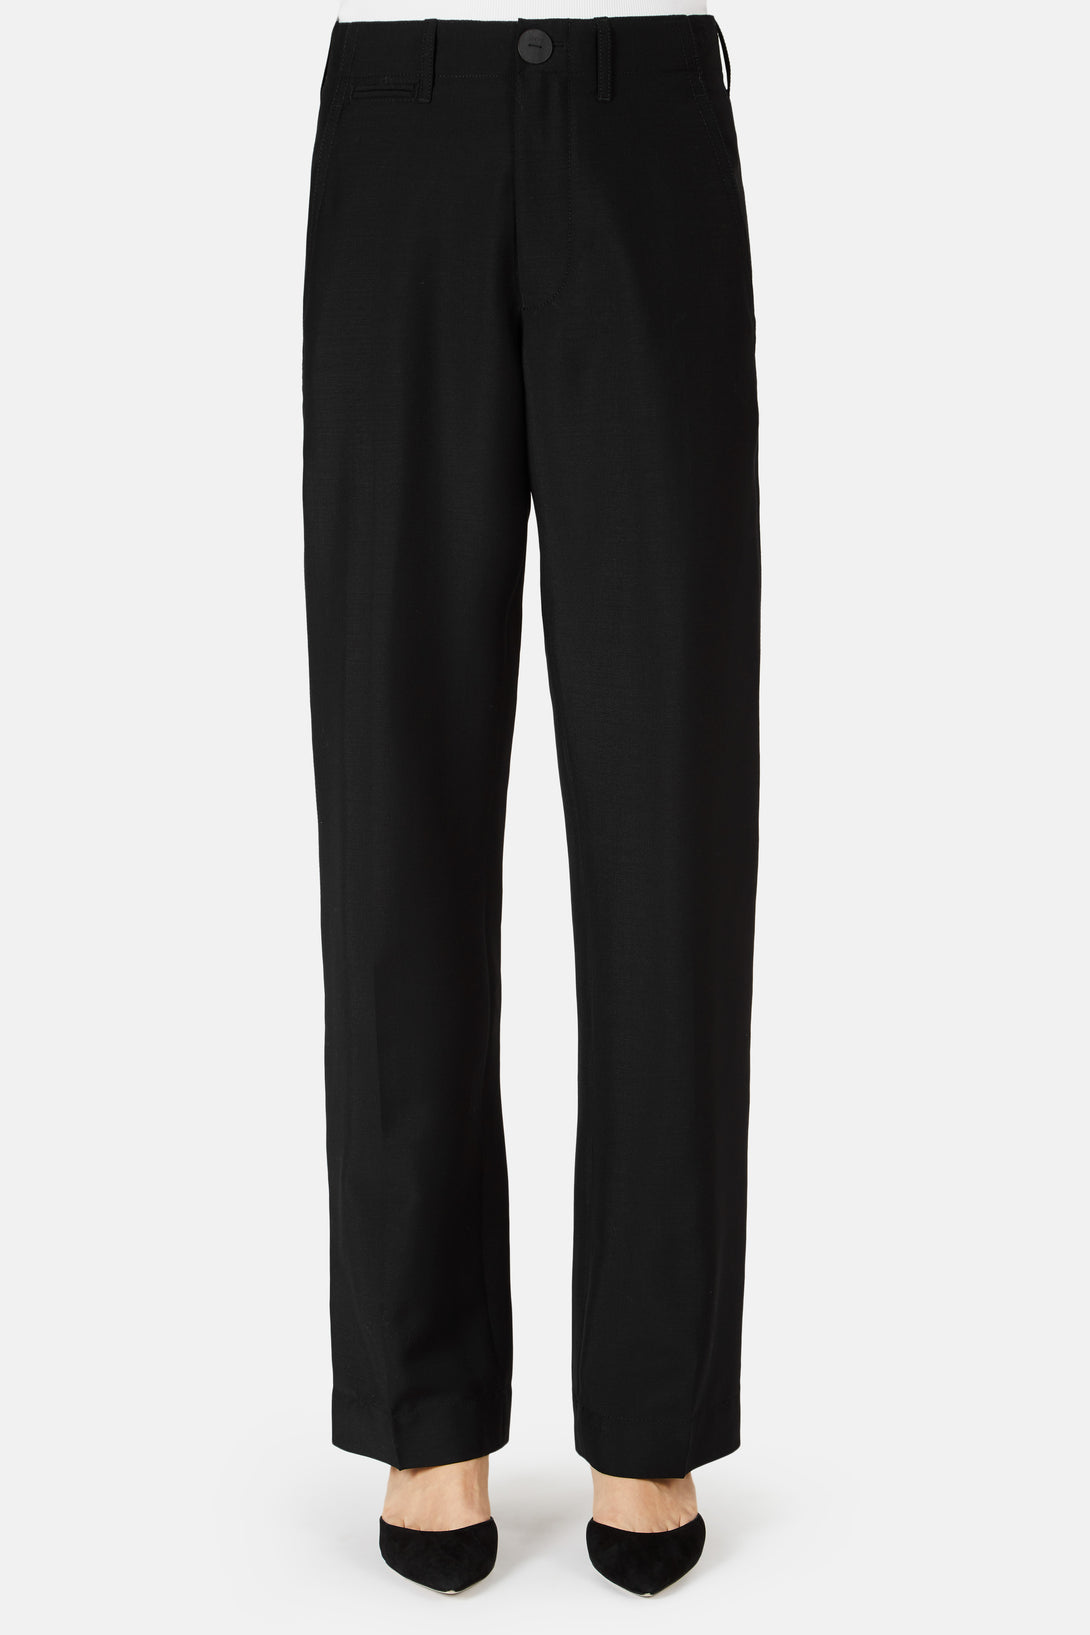 Straight Button Front Trouser - Black